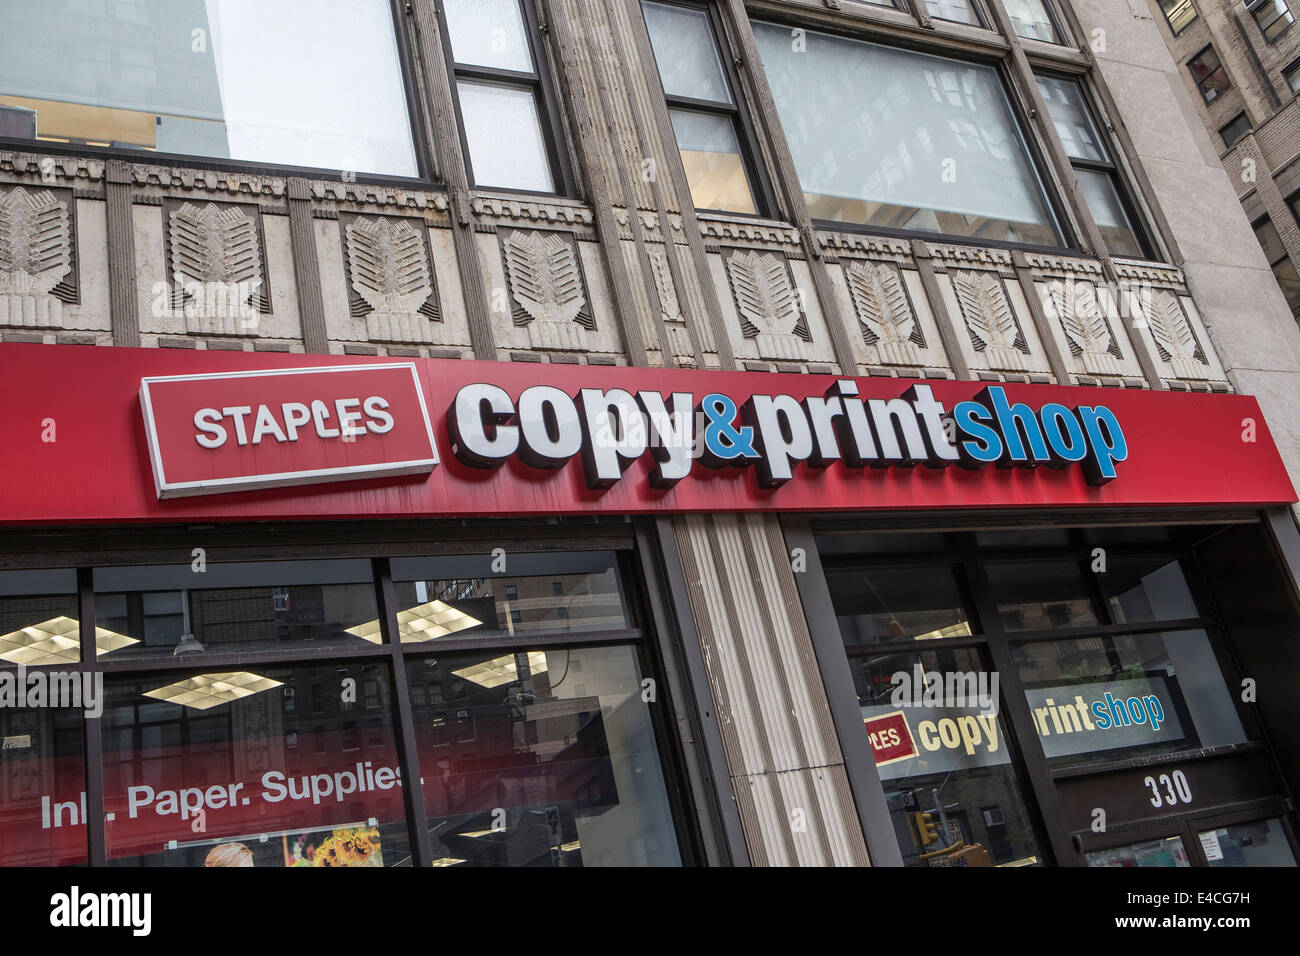 A Staples store is pictured in the New York City borough of Manhattan, NY - Stock Image